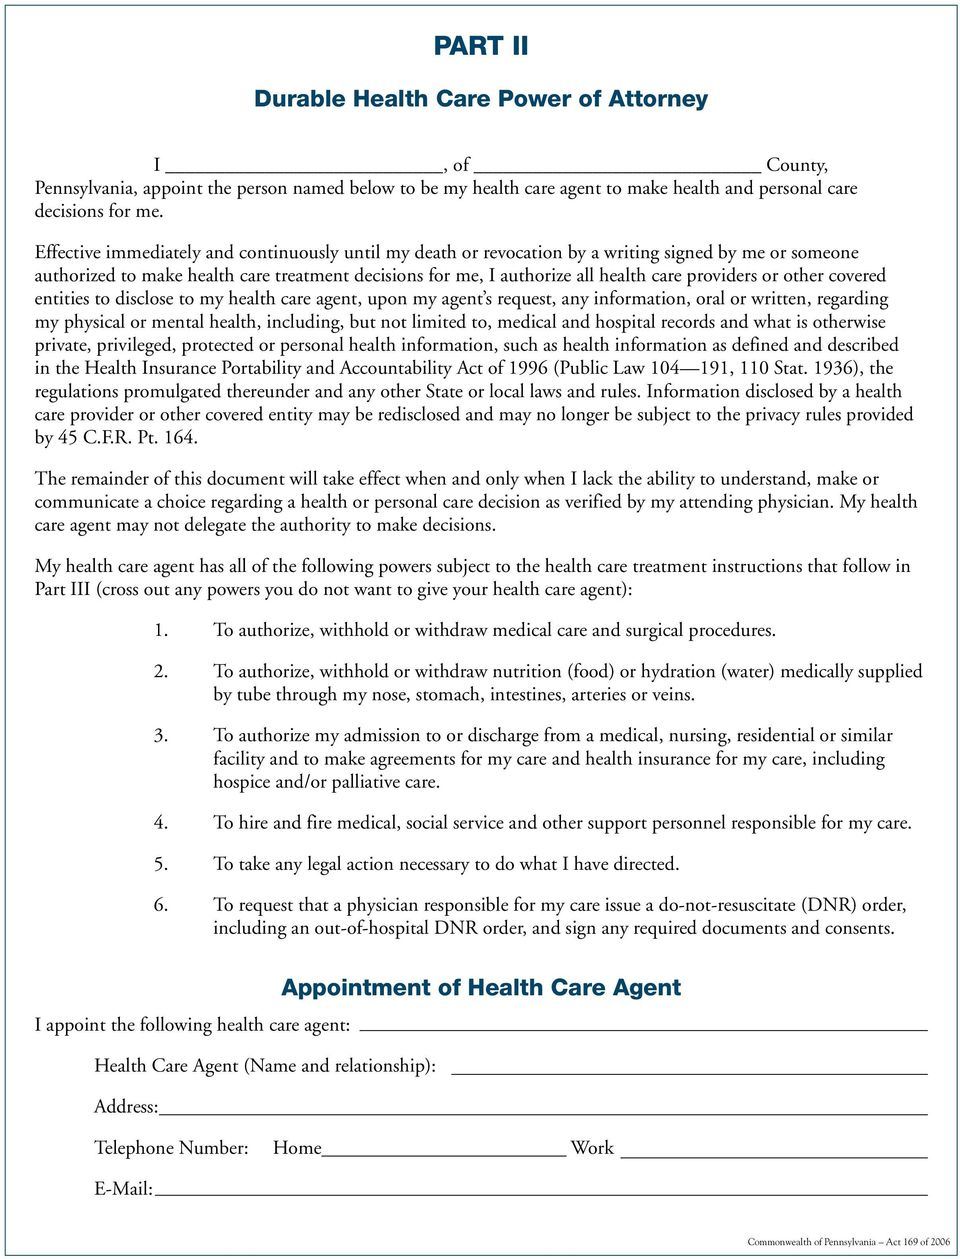 providers or other covered entities to disclose to my health care agent, upon my agent s request, any information, oral or written, regarding my physical or mental health, including, but not limited